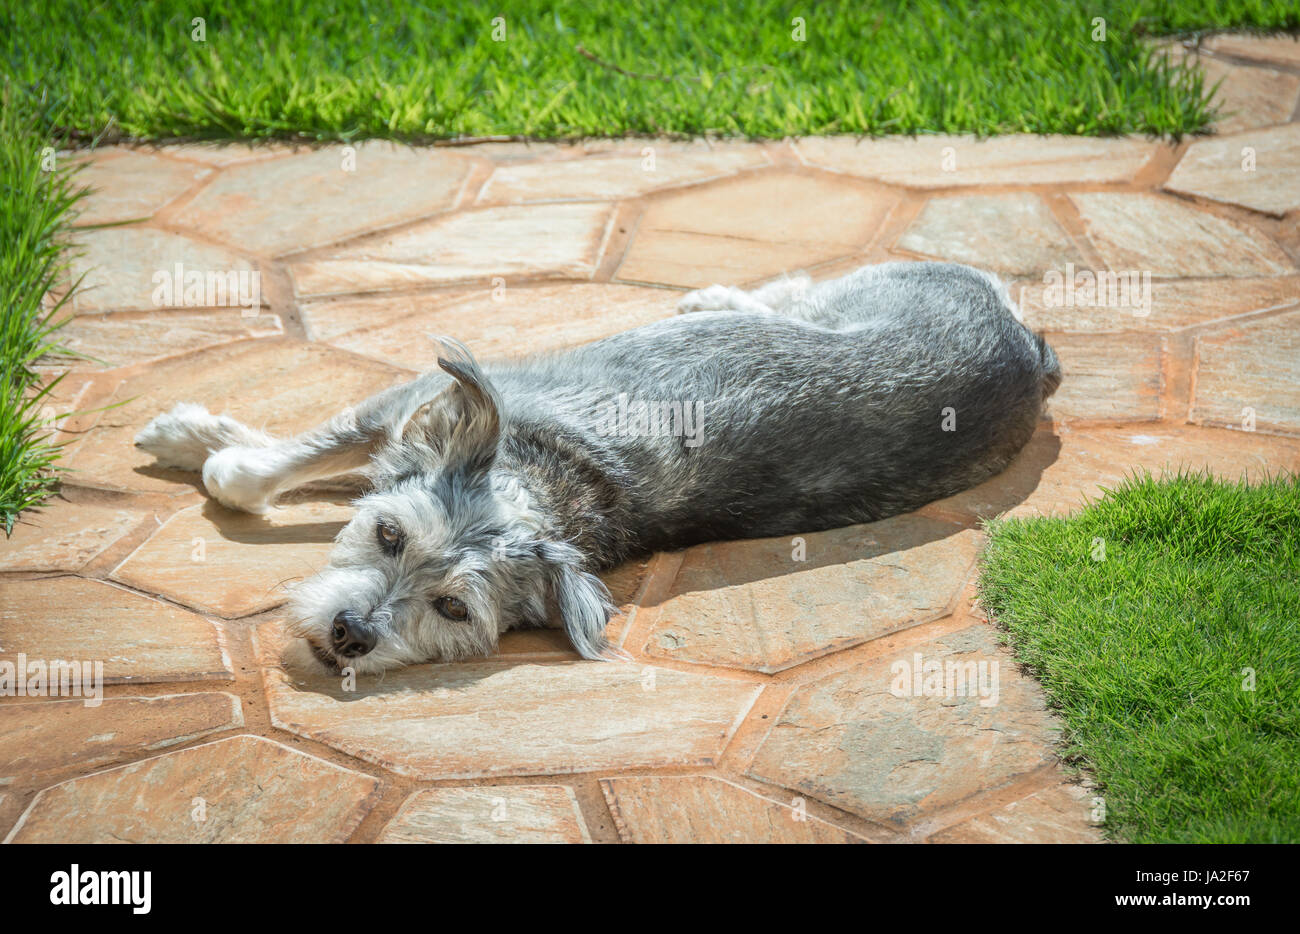 A small gray dog, Schnauzer Terrier mix, lying in the warm sun while staring into the camera on a lazy day. - Stock Image